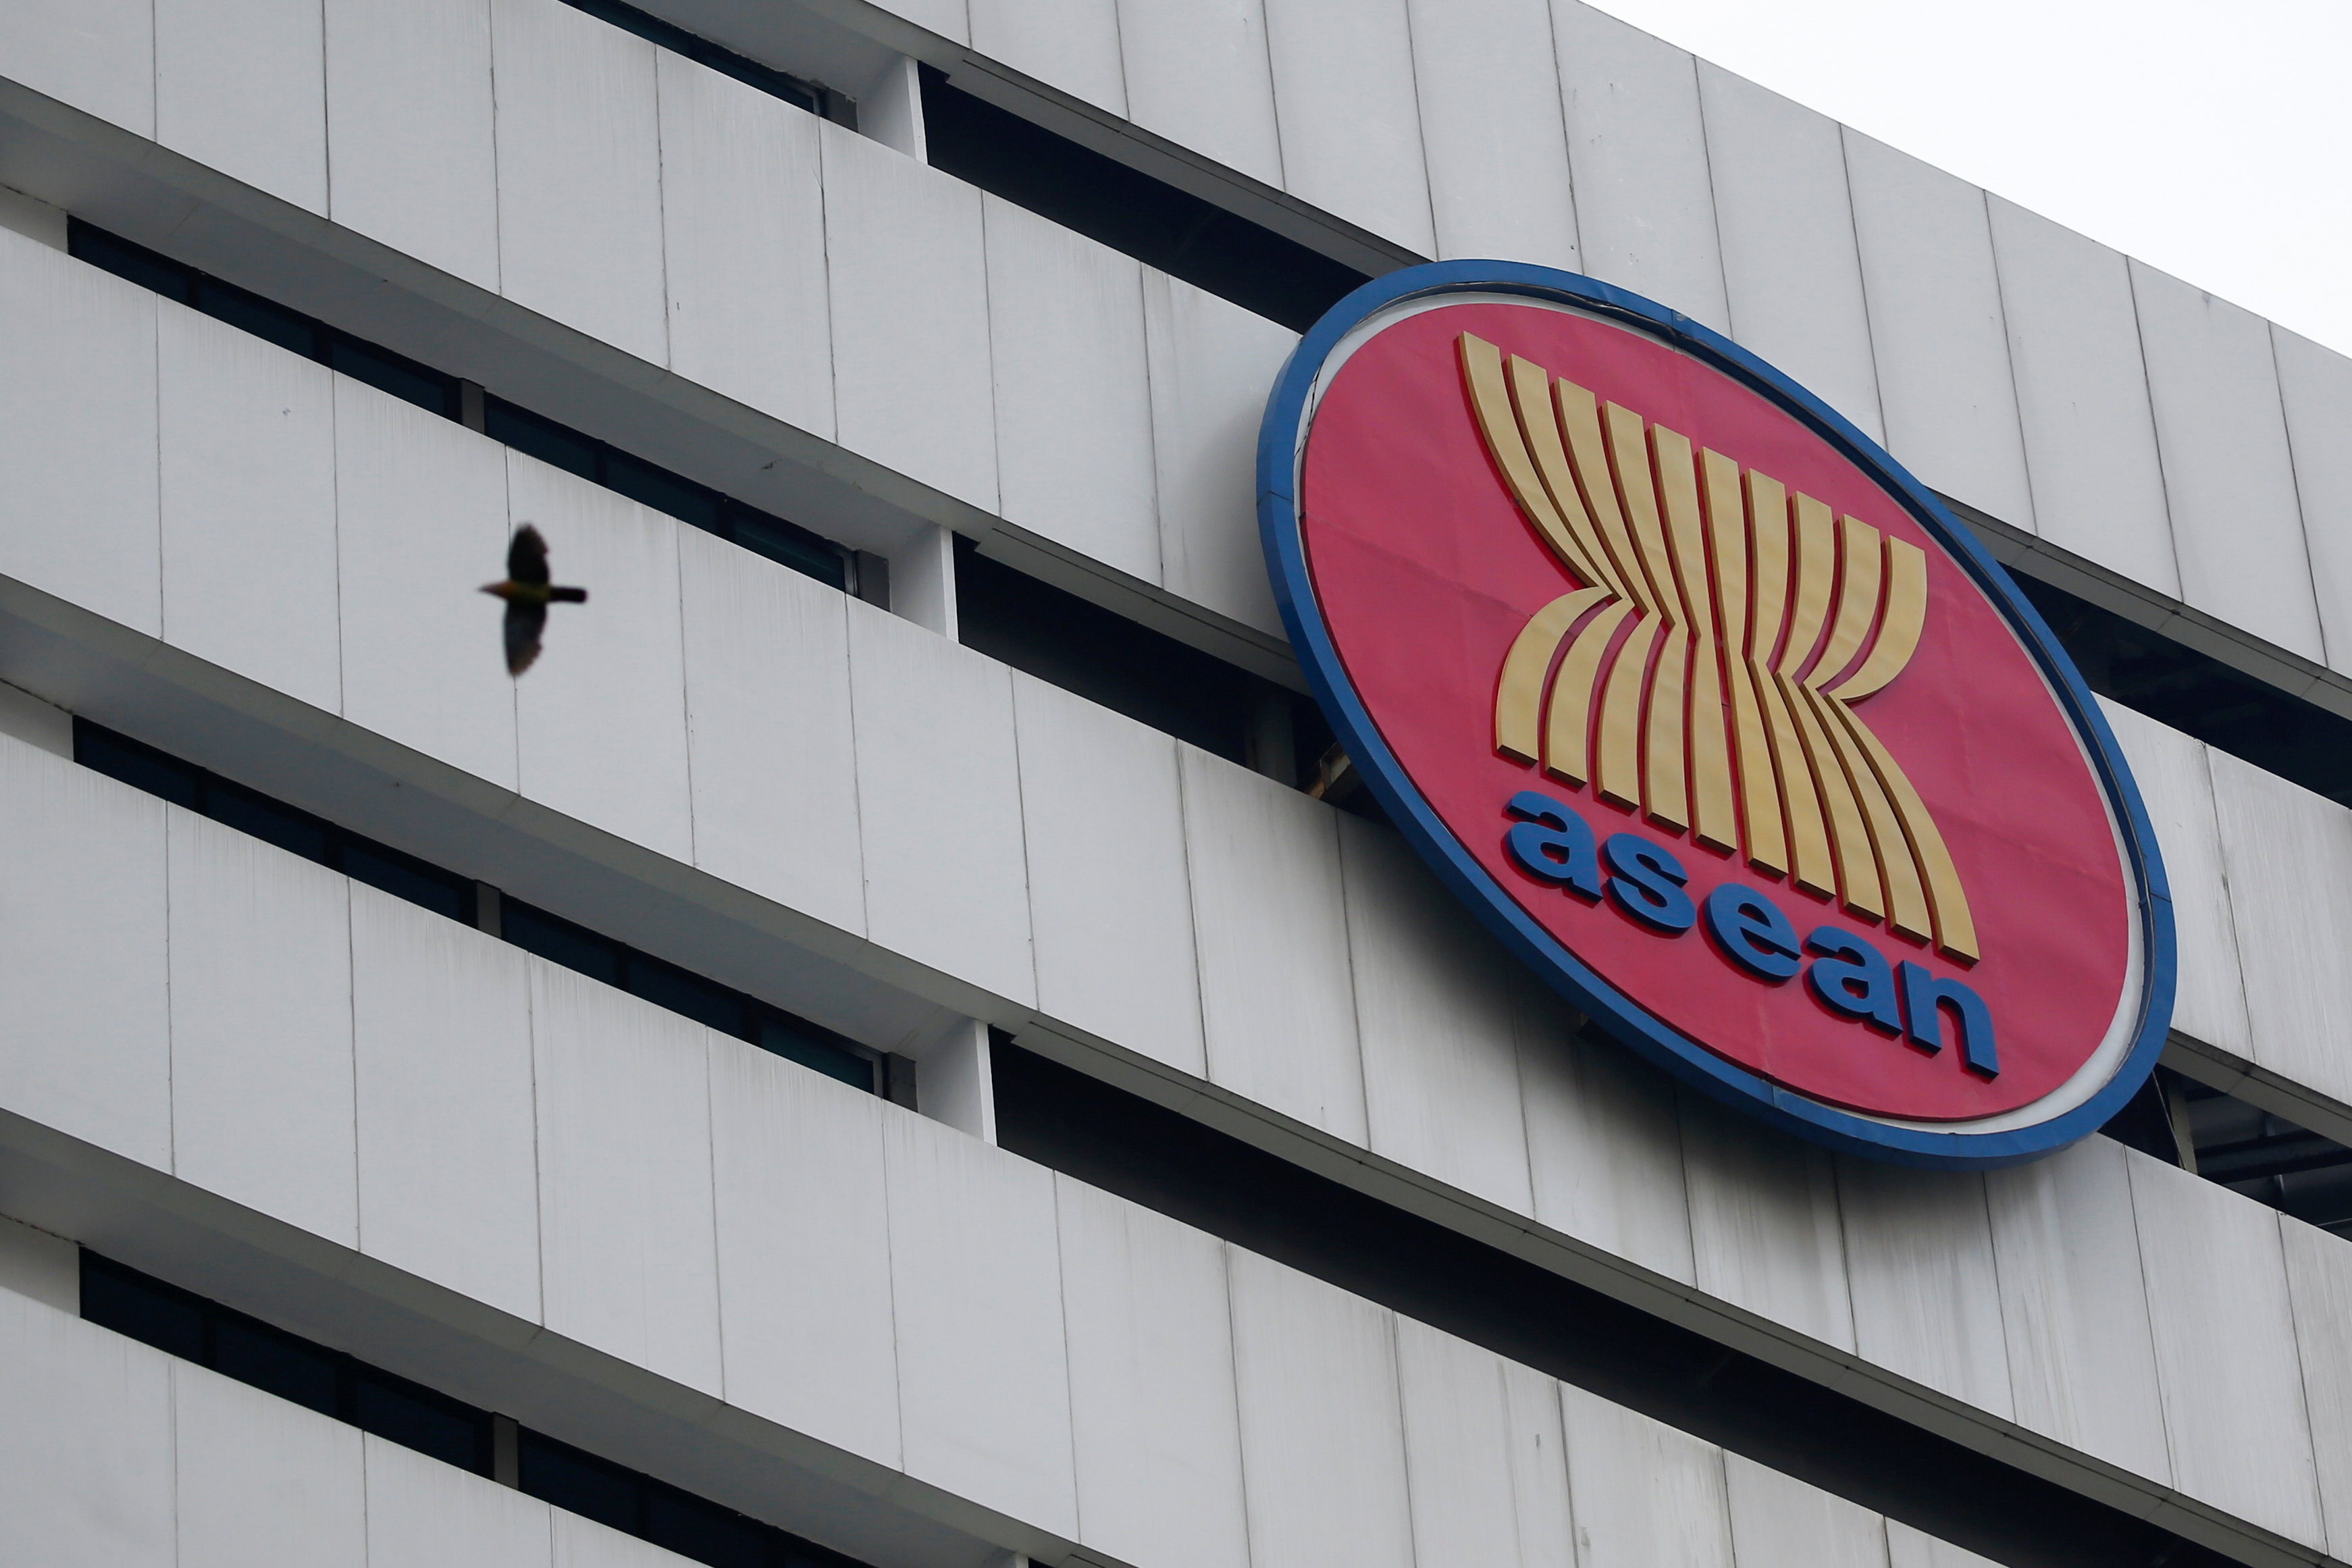 A bird flies near the Association of Southeast Asian Nations (ASEAN) secretariat building, ahead of the ASEAN leaders' meeting in Jakarta, Indonesia, April 23, 2021. REUTERS/Willy Kurniawan